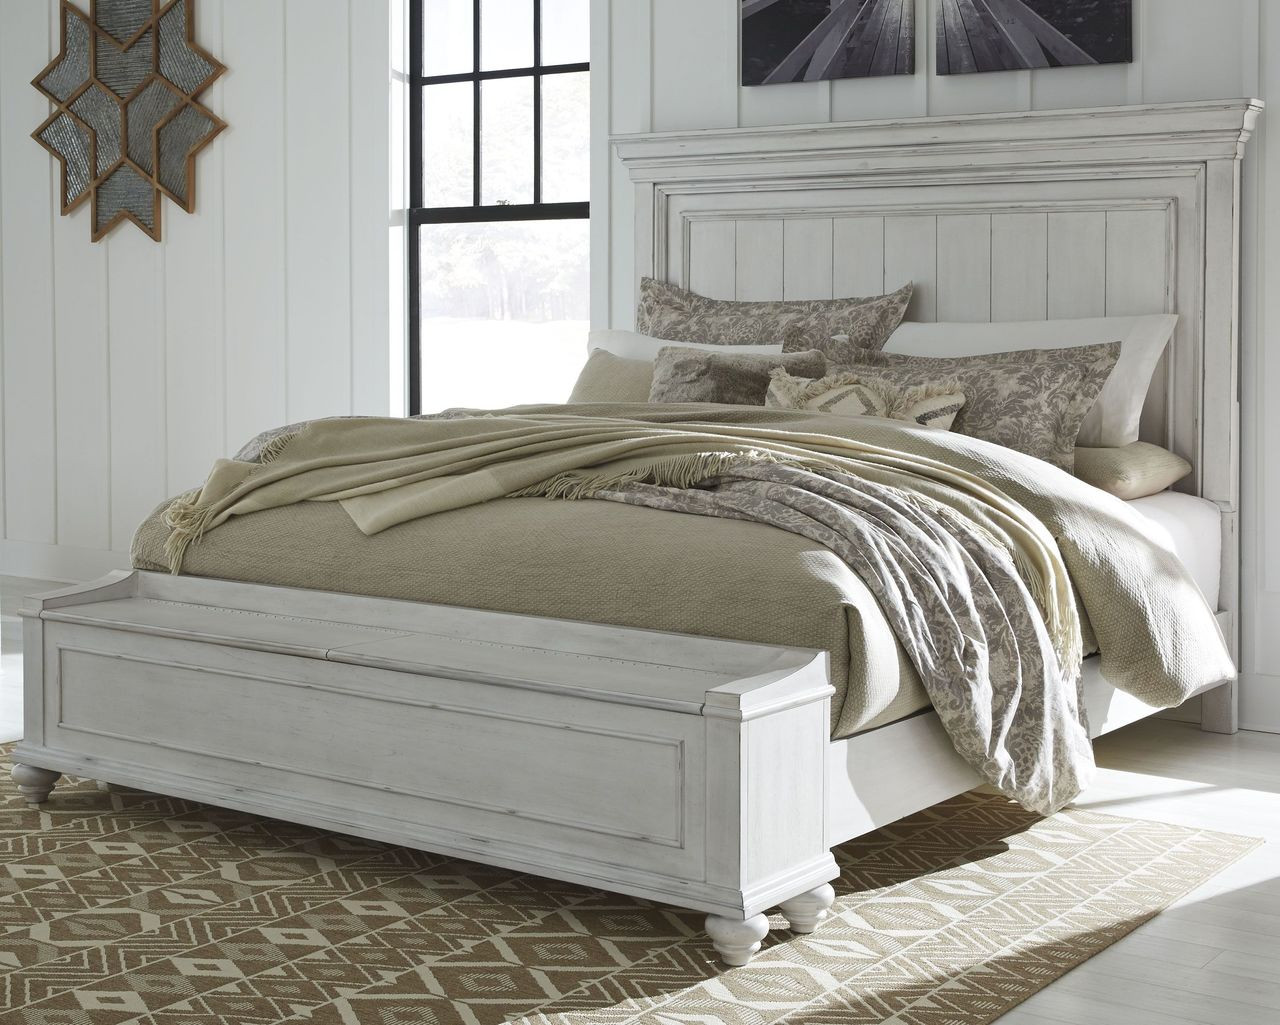 Picture of: The Kanwyn Whitewash King Panel Upholstered Bed With Storage Sold At Outten Brothers Of Salisbury Serving Salisbury Maryland And Surrounding Areas